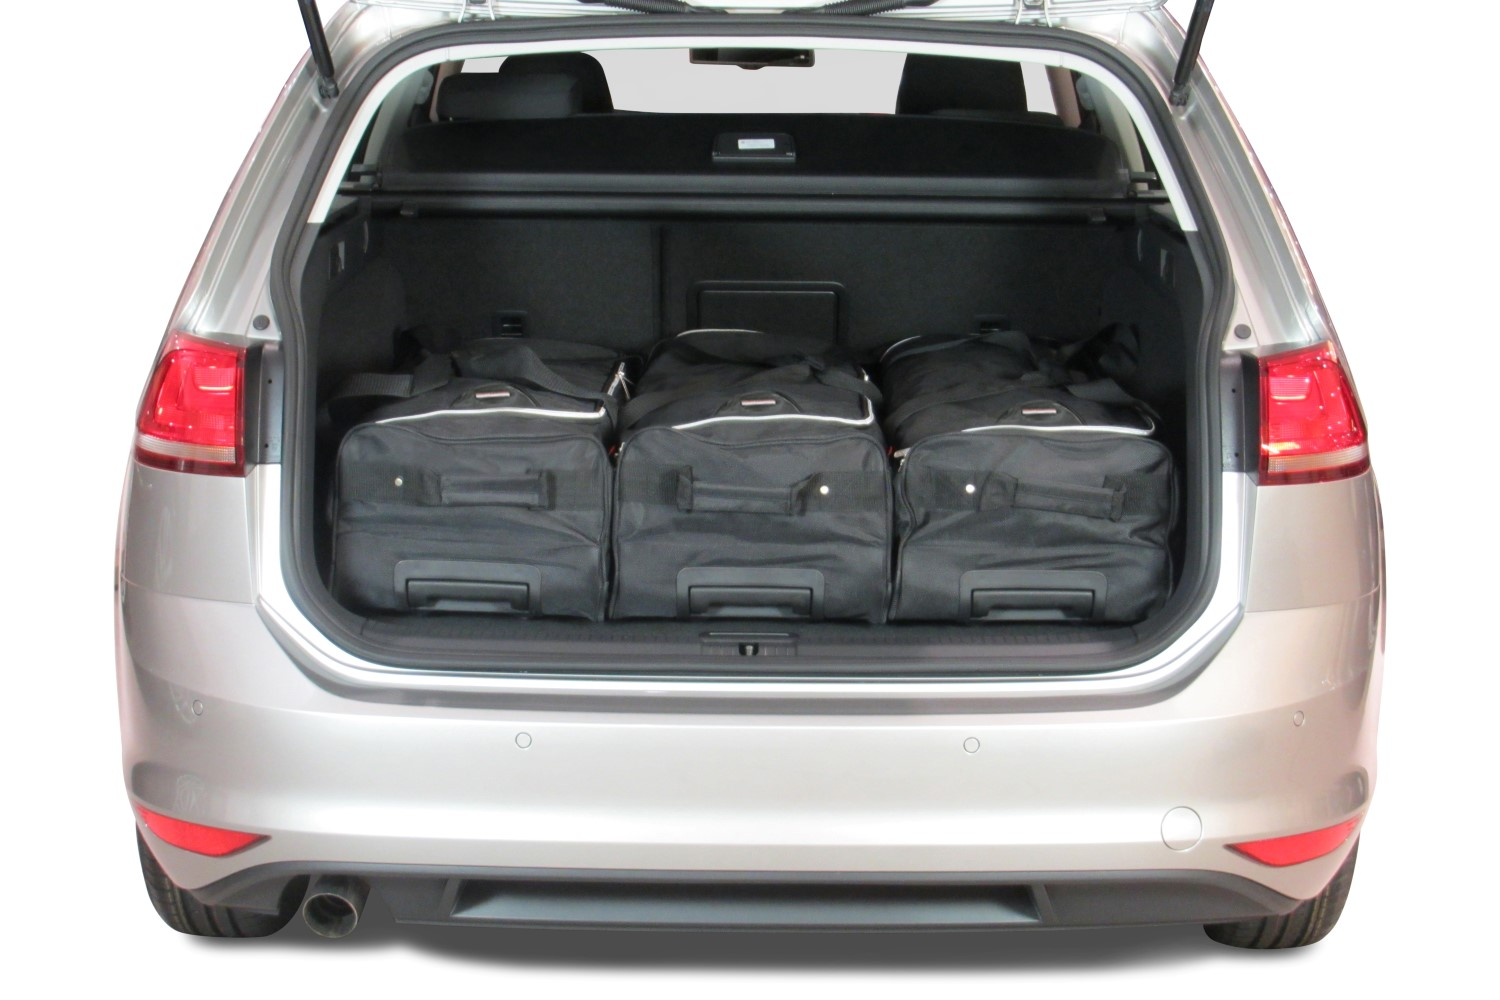 golf volkswagen golf vii 5g variant 2013 present car bags travel bags. Black Bedroom Furniture Sets. Home Design Ideas